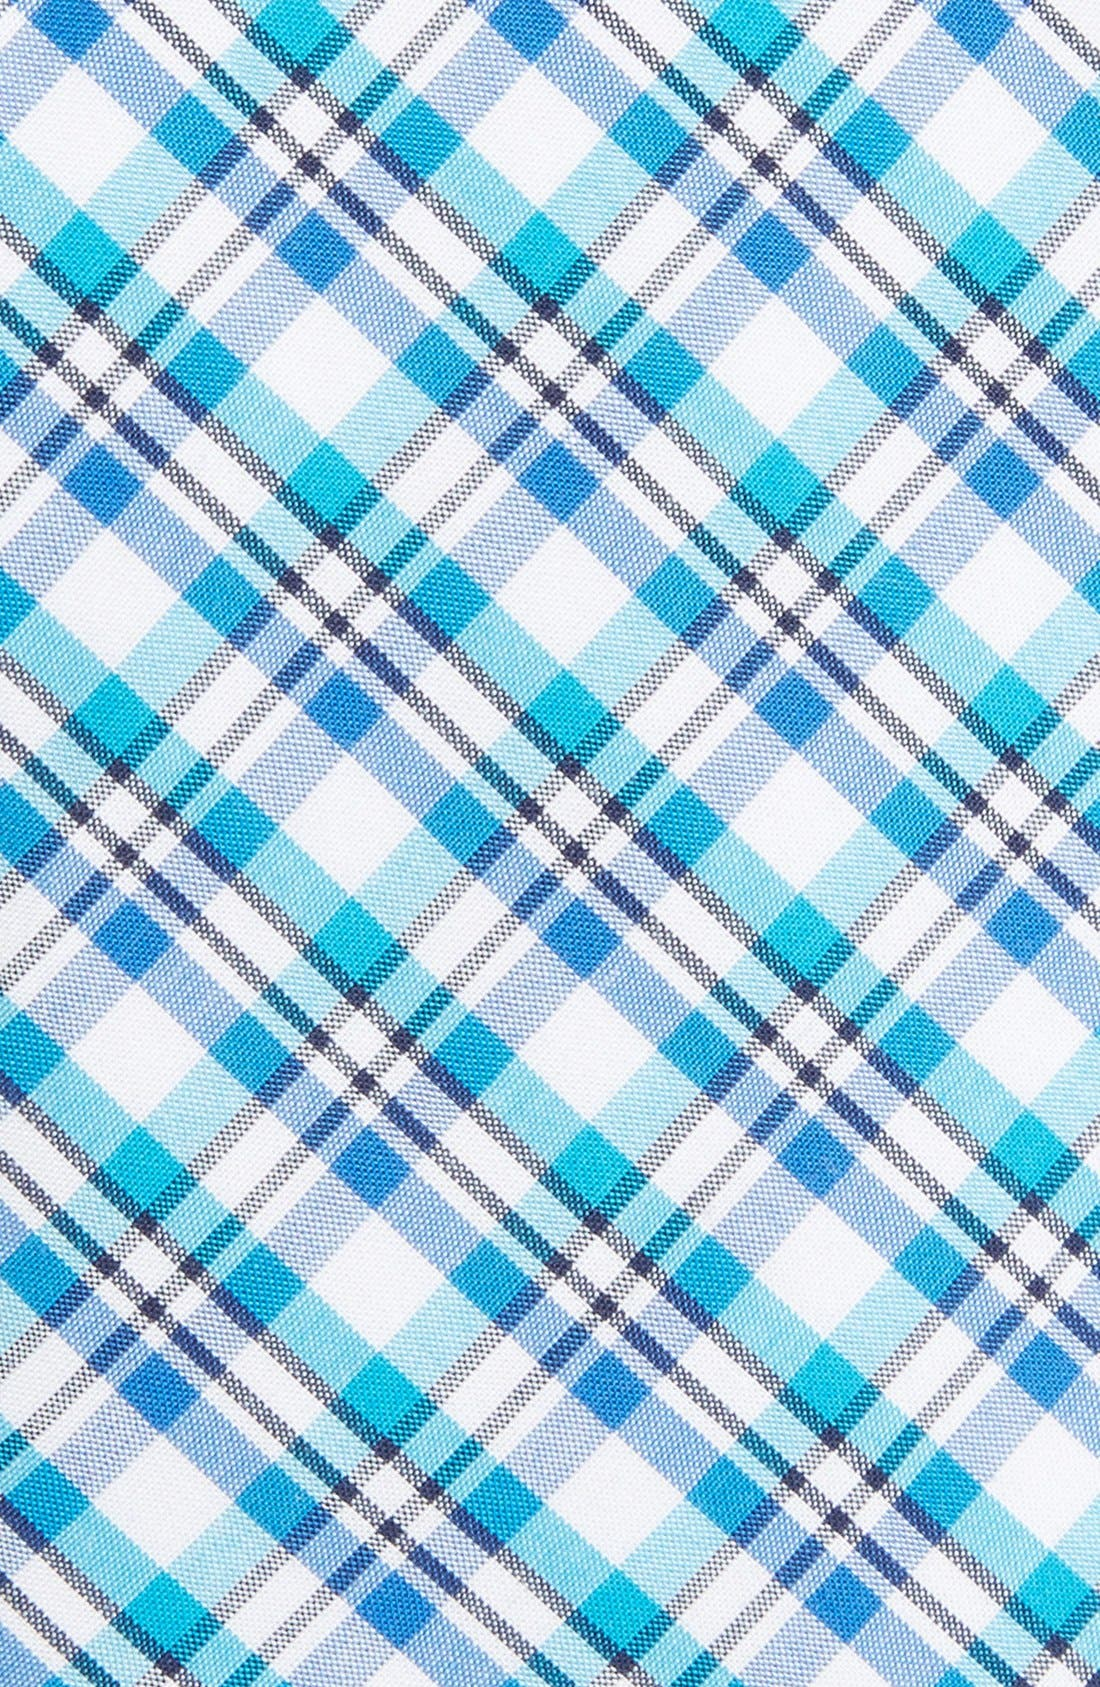 'Boomer' Plaid Cotton Tie,                             Alternate thumbnail 6, color,